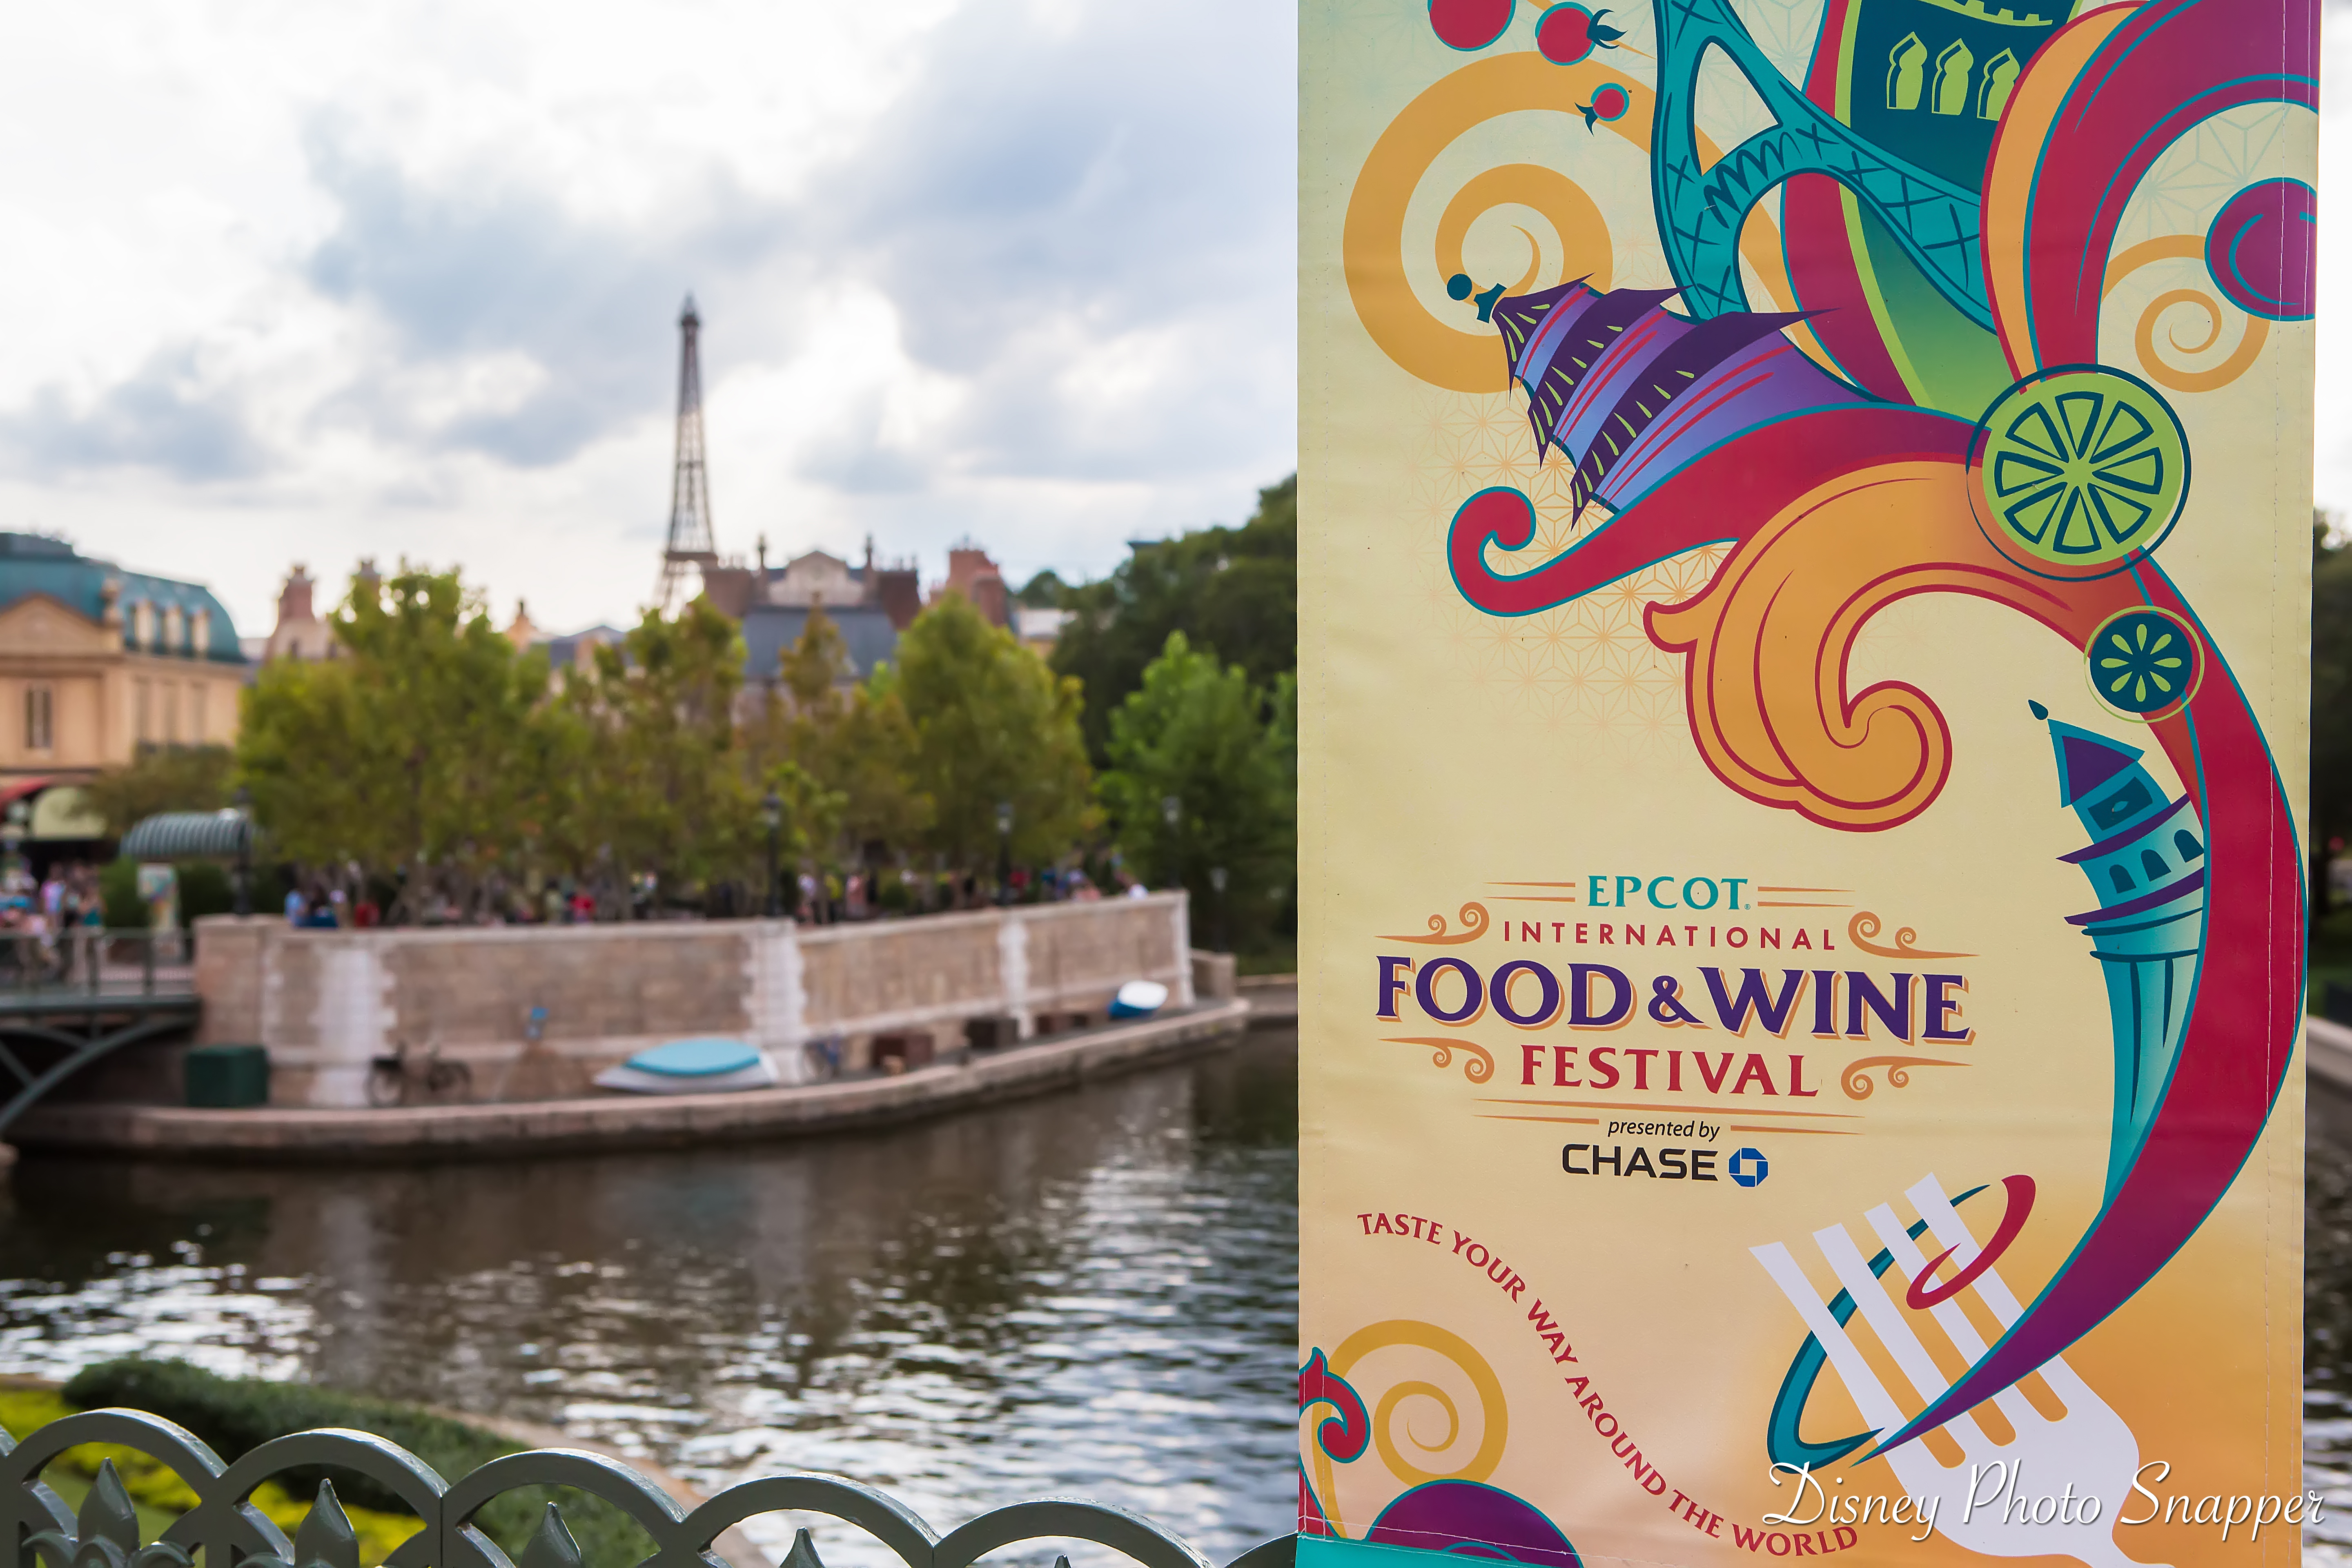 The Epcot Food and Wine Festival is celebrating its 20th year with more special events than ever! - Photo by Brett Svenson